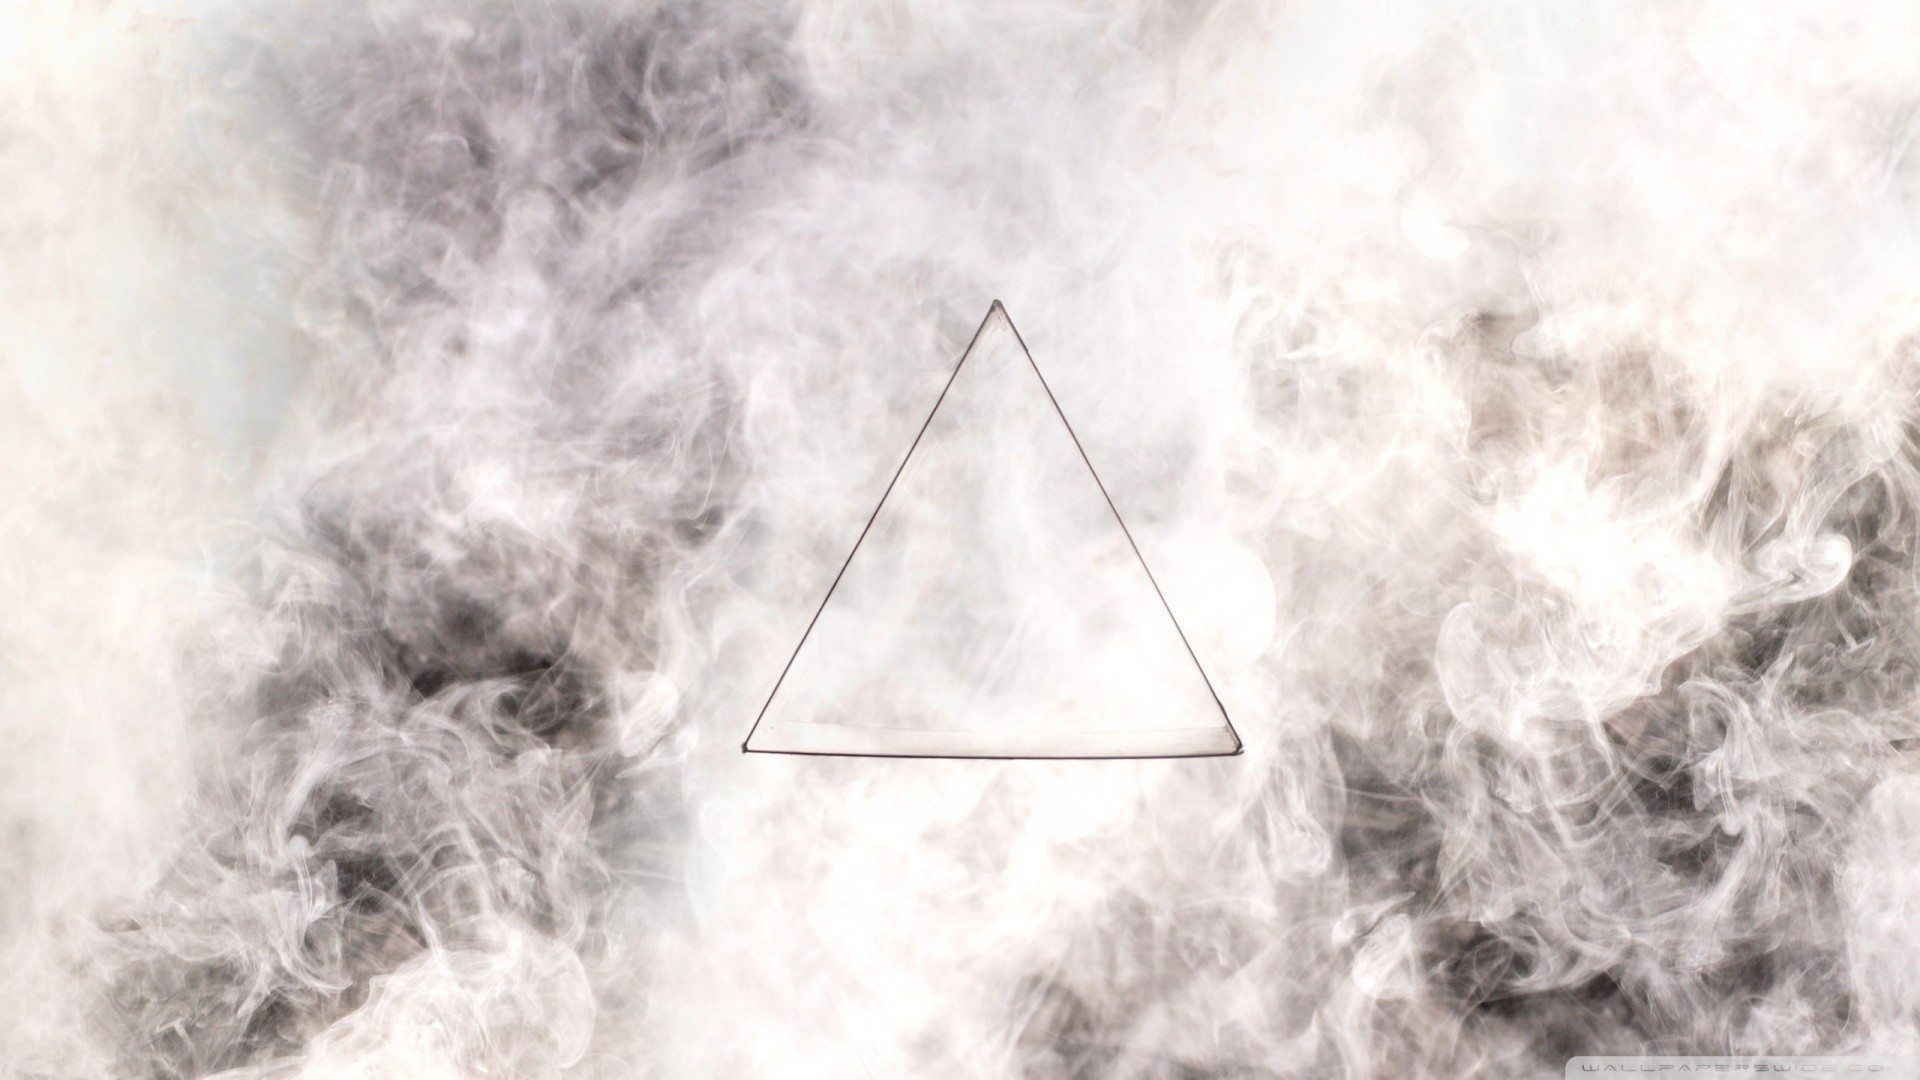 triangle, Minimalism, Smoke Wallpapers HD / Desktop and Mobile Backgrounds